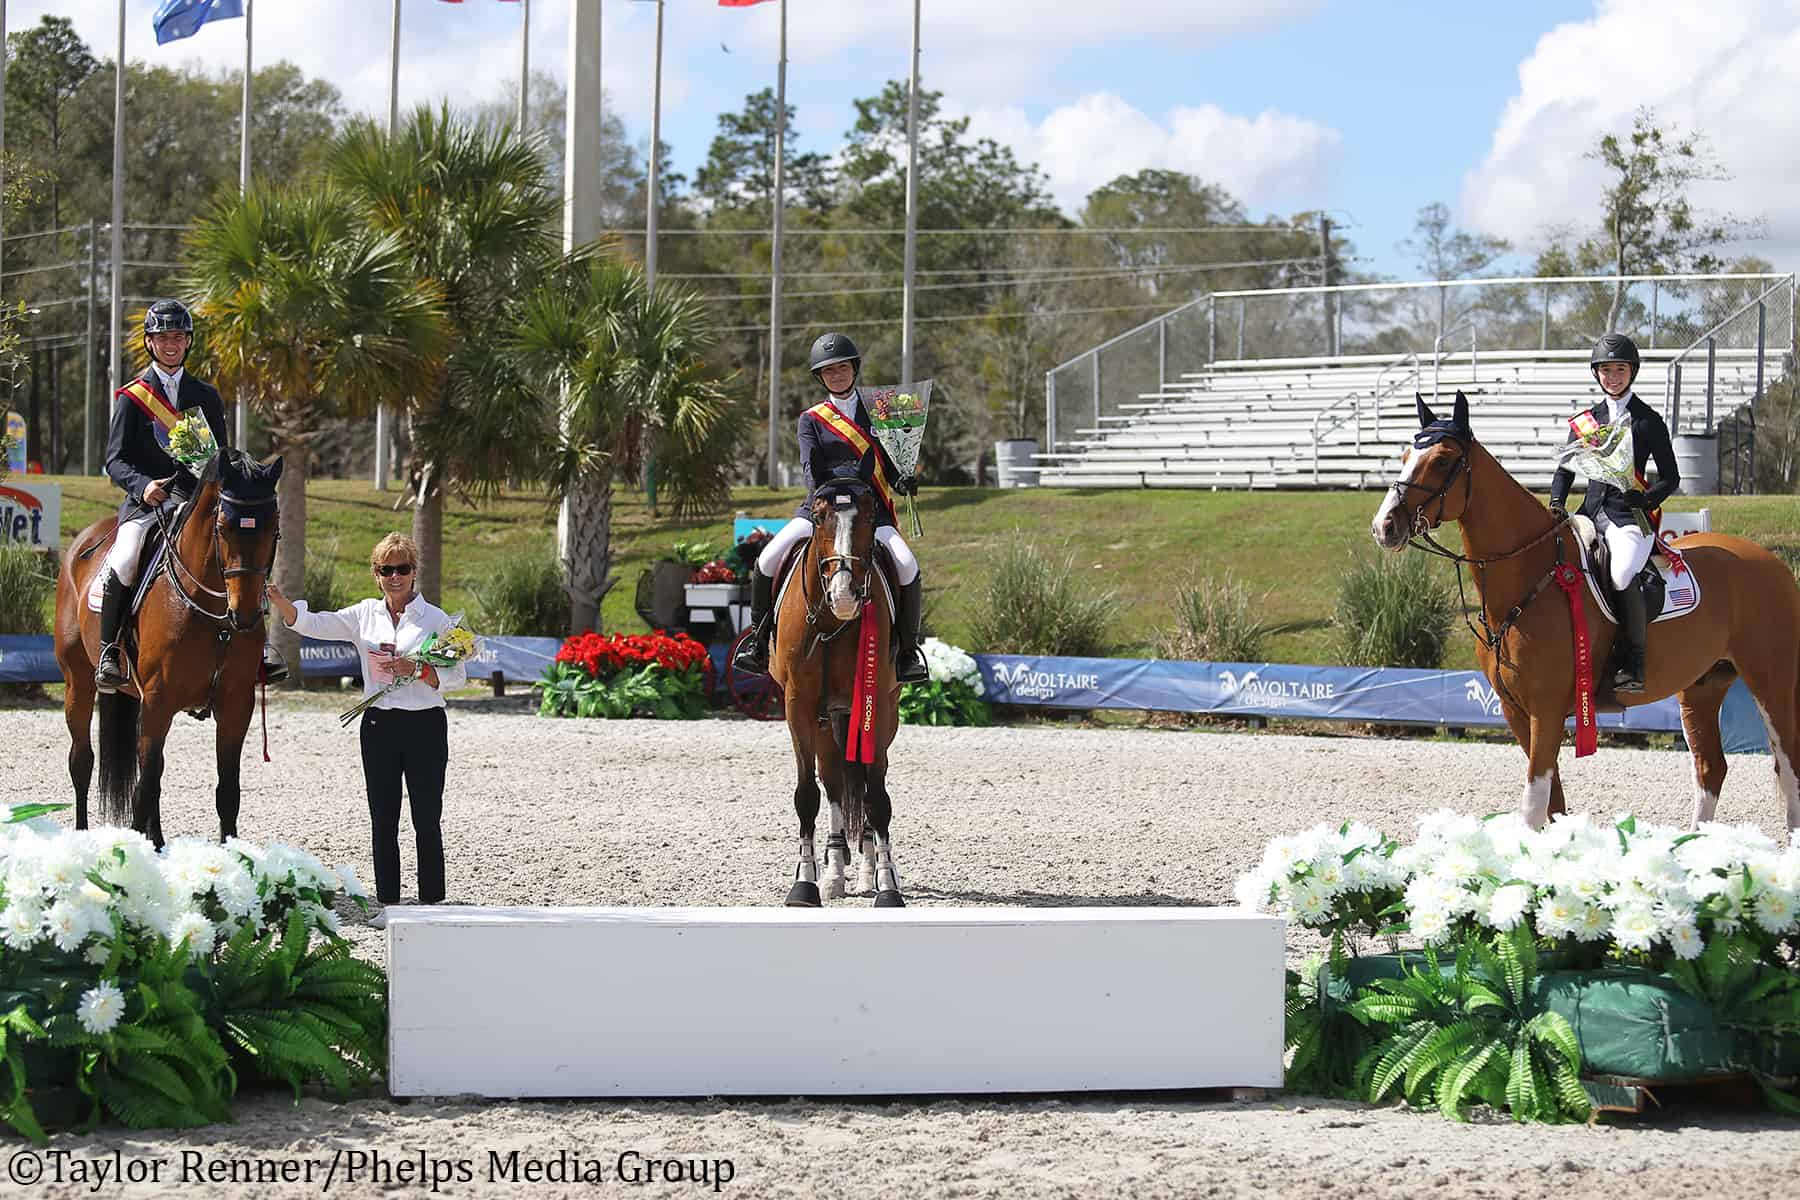 The USA's Stars and Stripes team took home the silver medal in the Junior Nations Cup at CSIJCH Ocala.